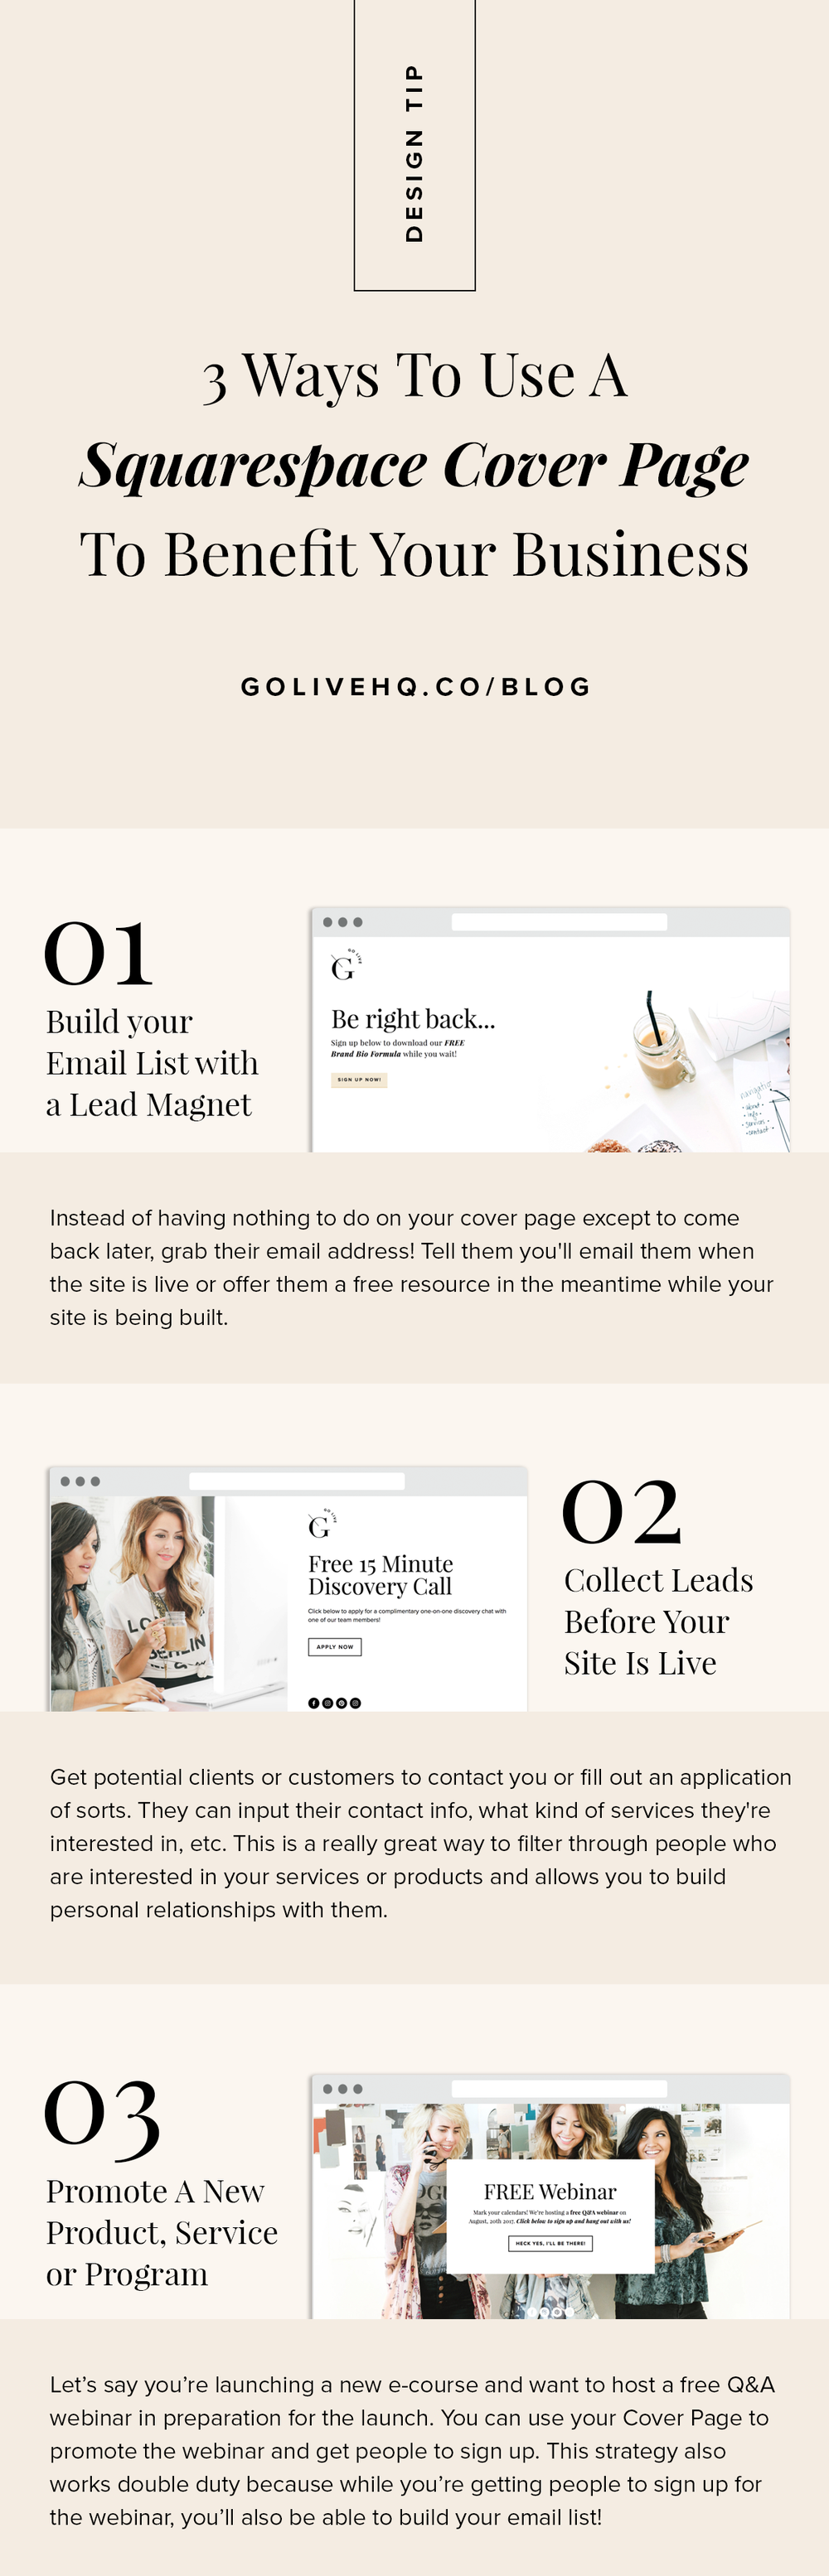 3 Ways To Use A Squarespace Cover Page To Benefit Your Business | By Go Live HQ